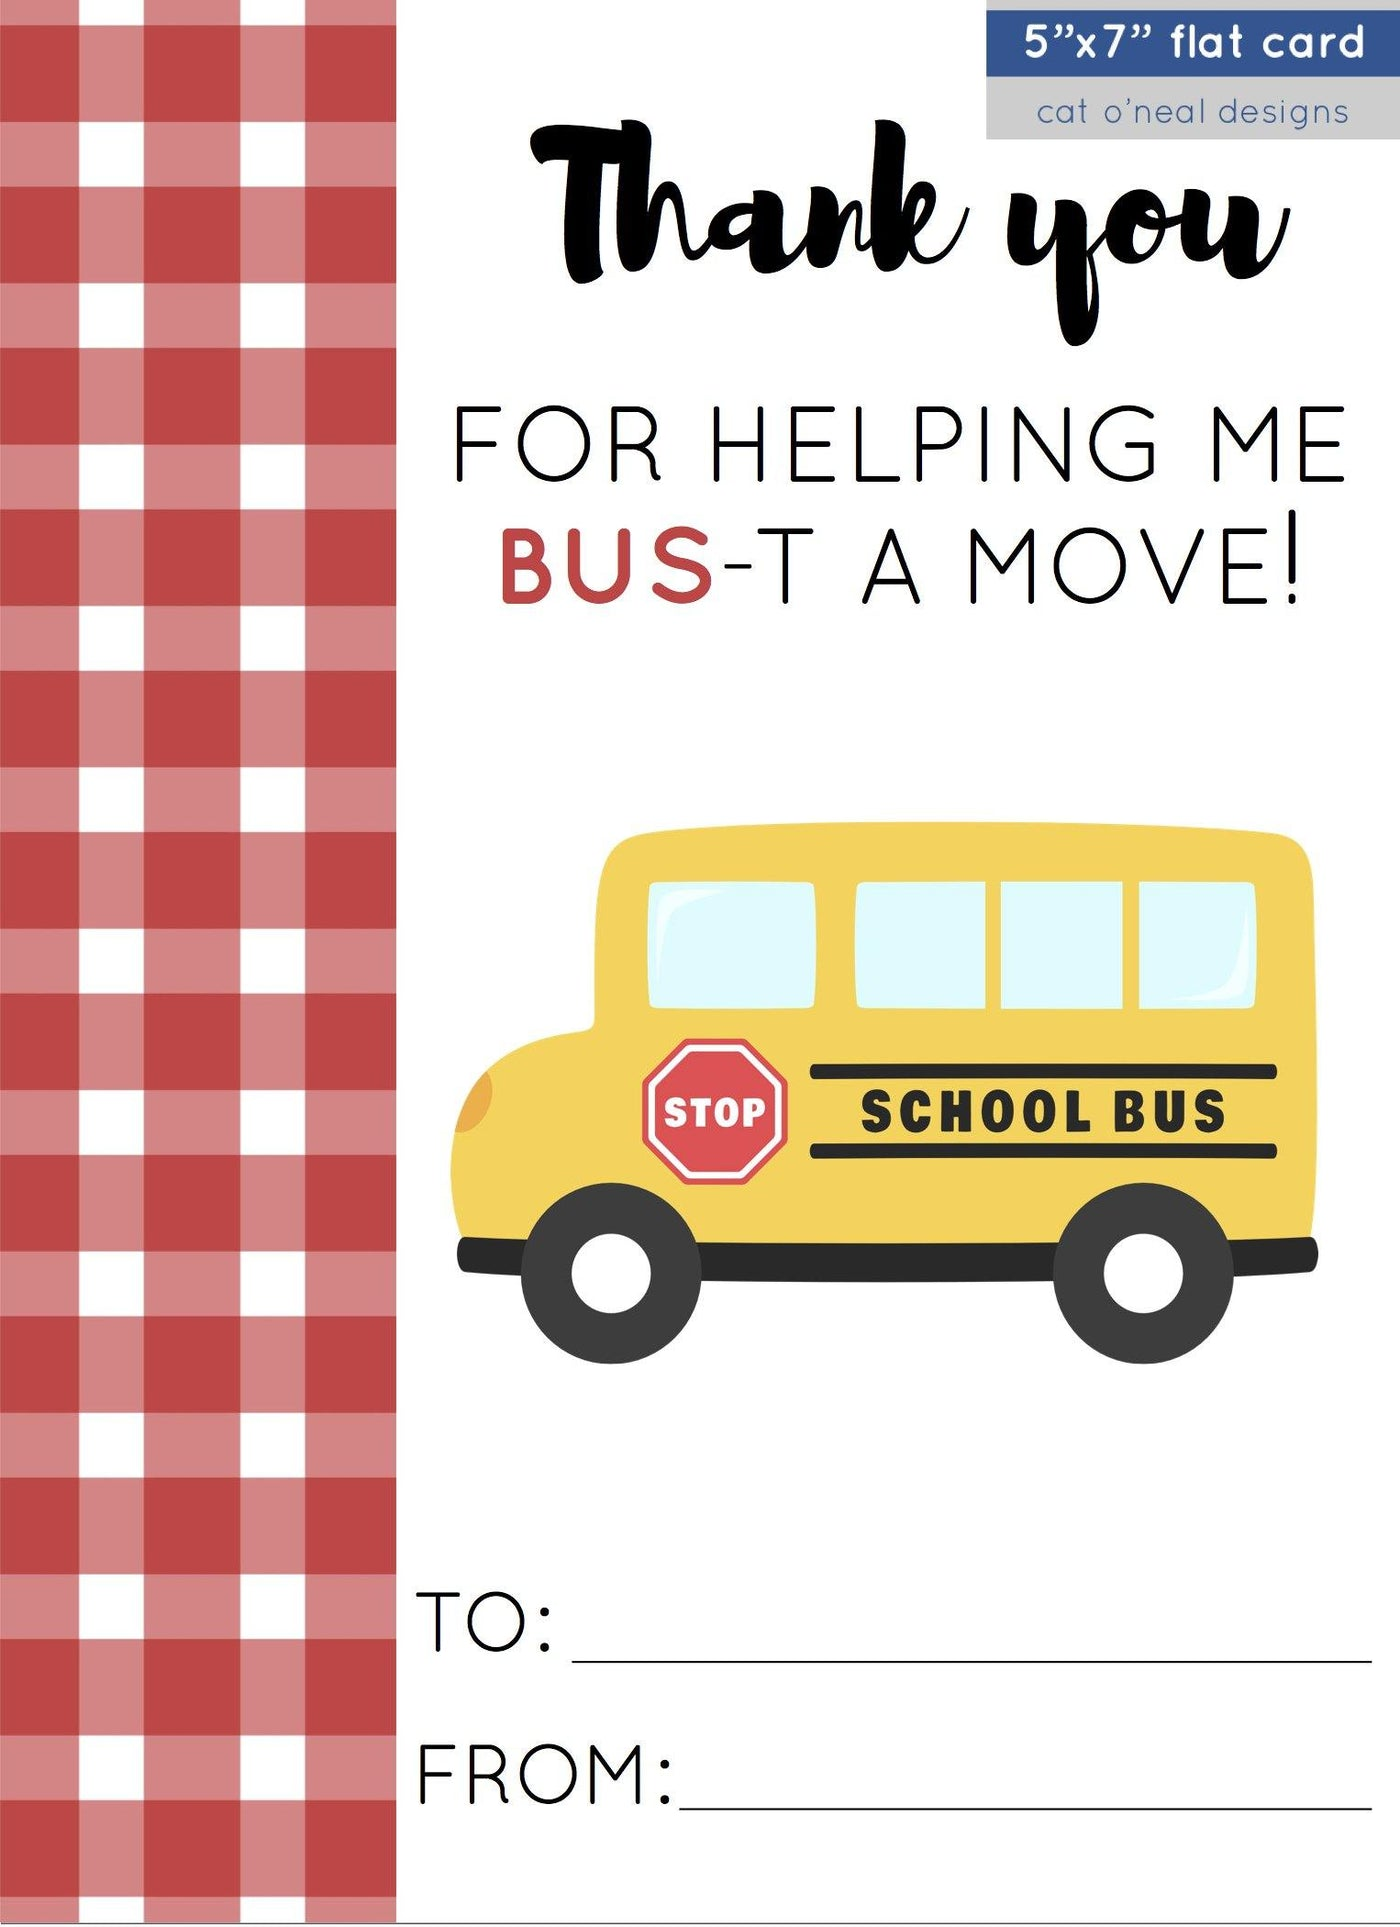 ADD-ON CARD || THANK YOU FOR HELPING ME/US BUS-T A MOVE!